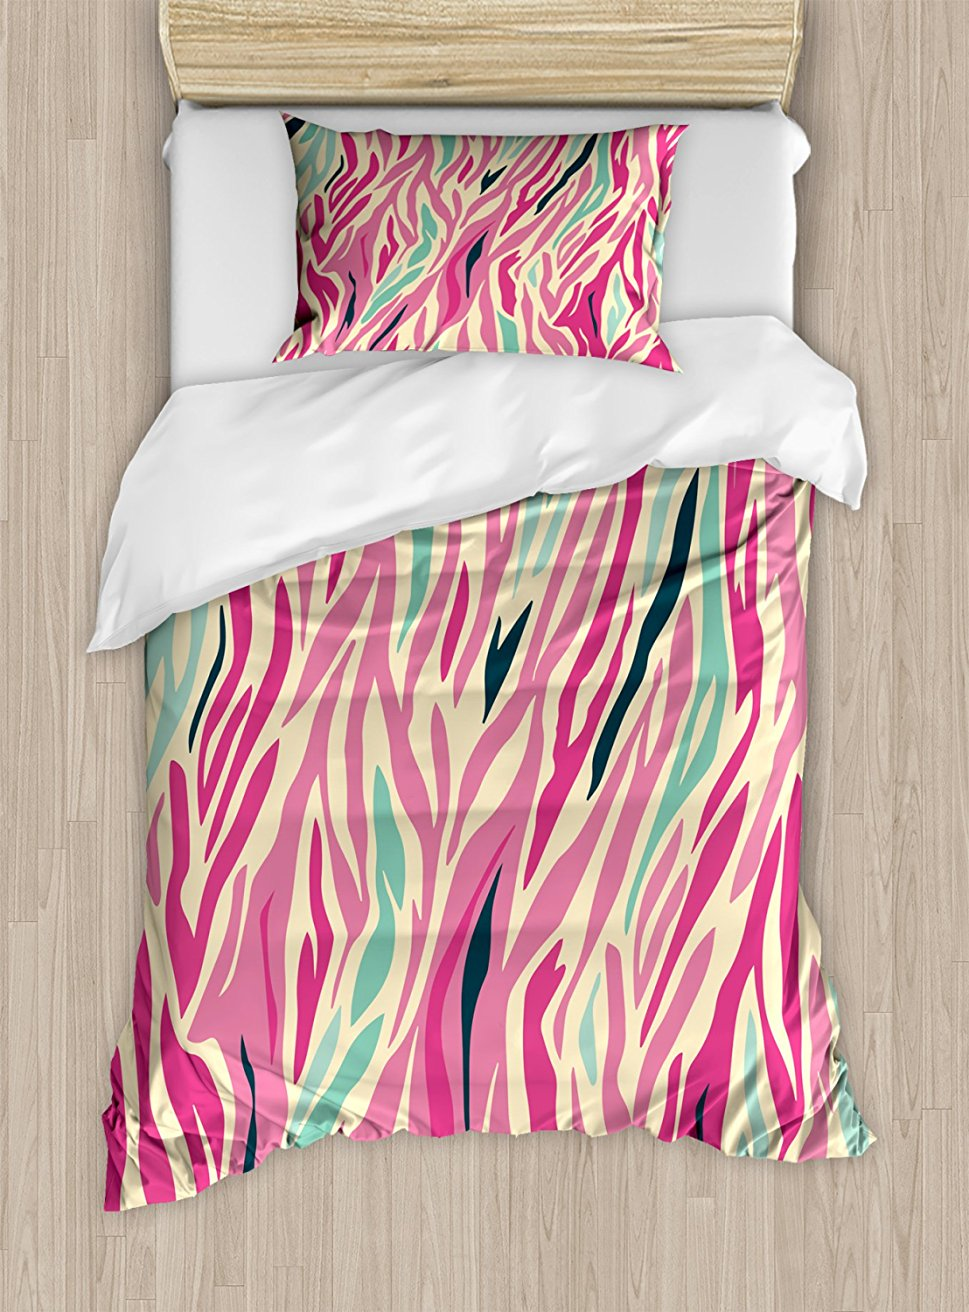 Pink Zebra Duvet Cover Set Funky Fashion Pattern With